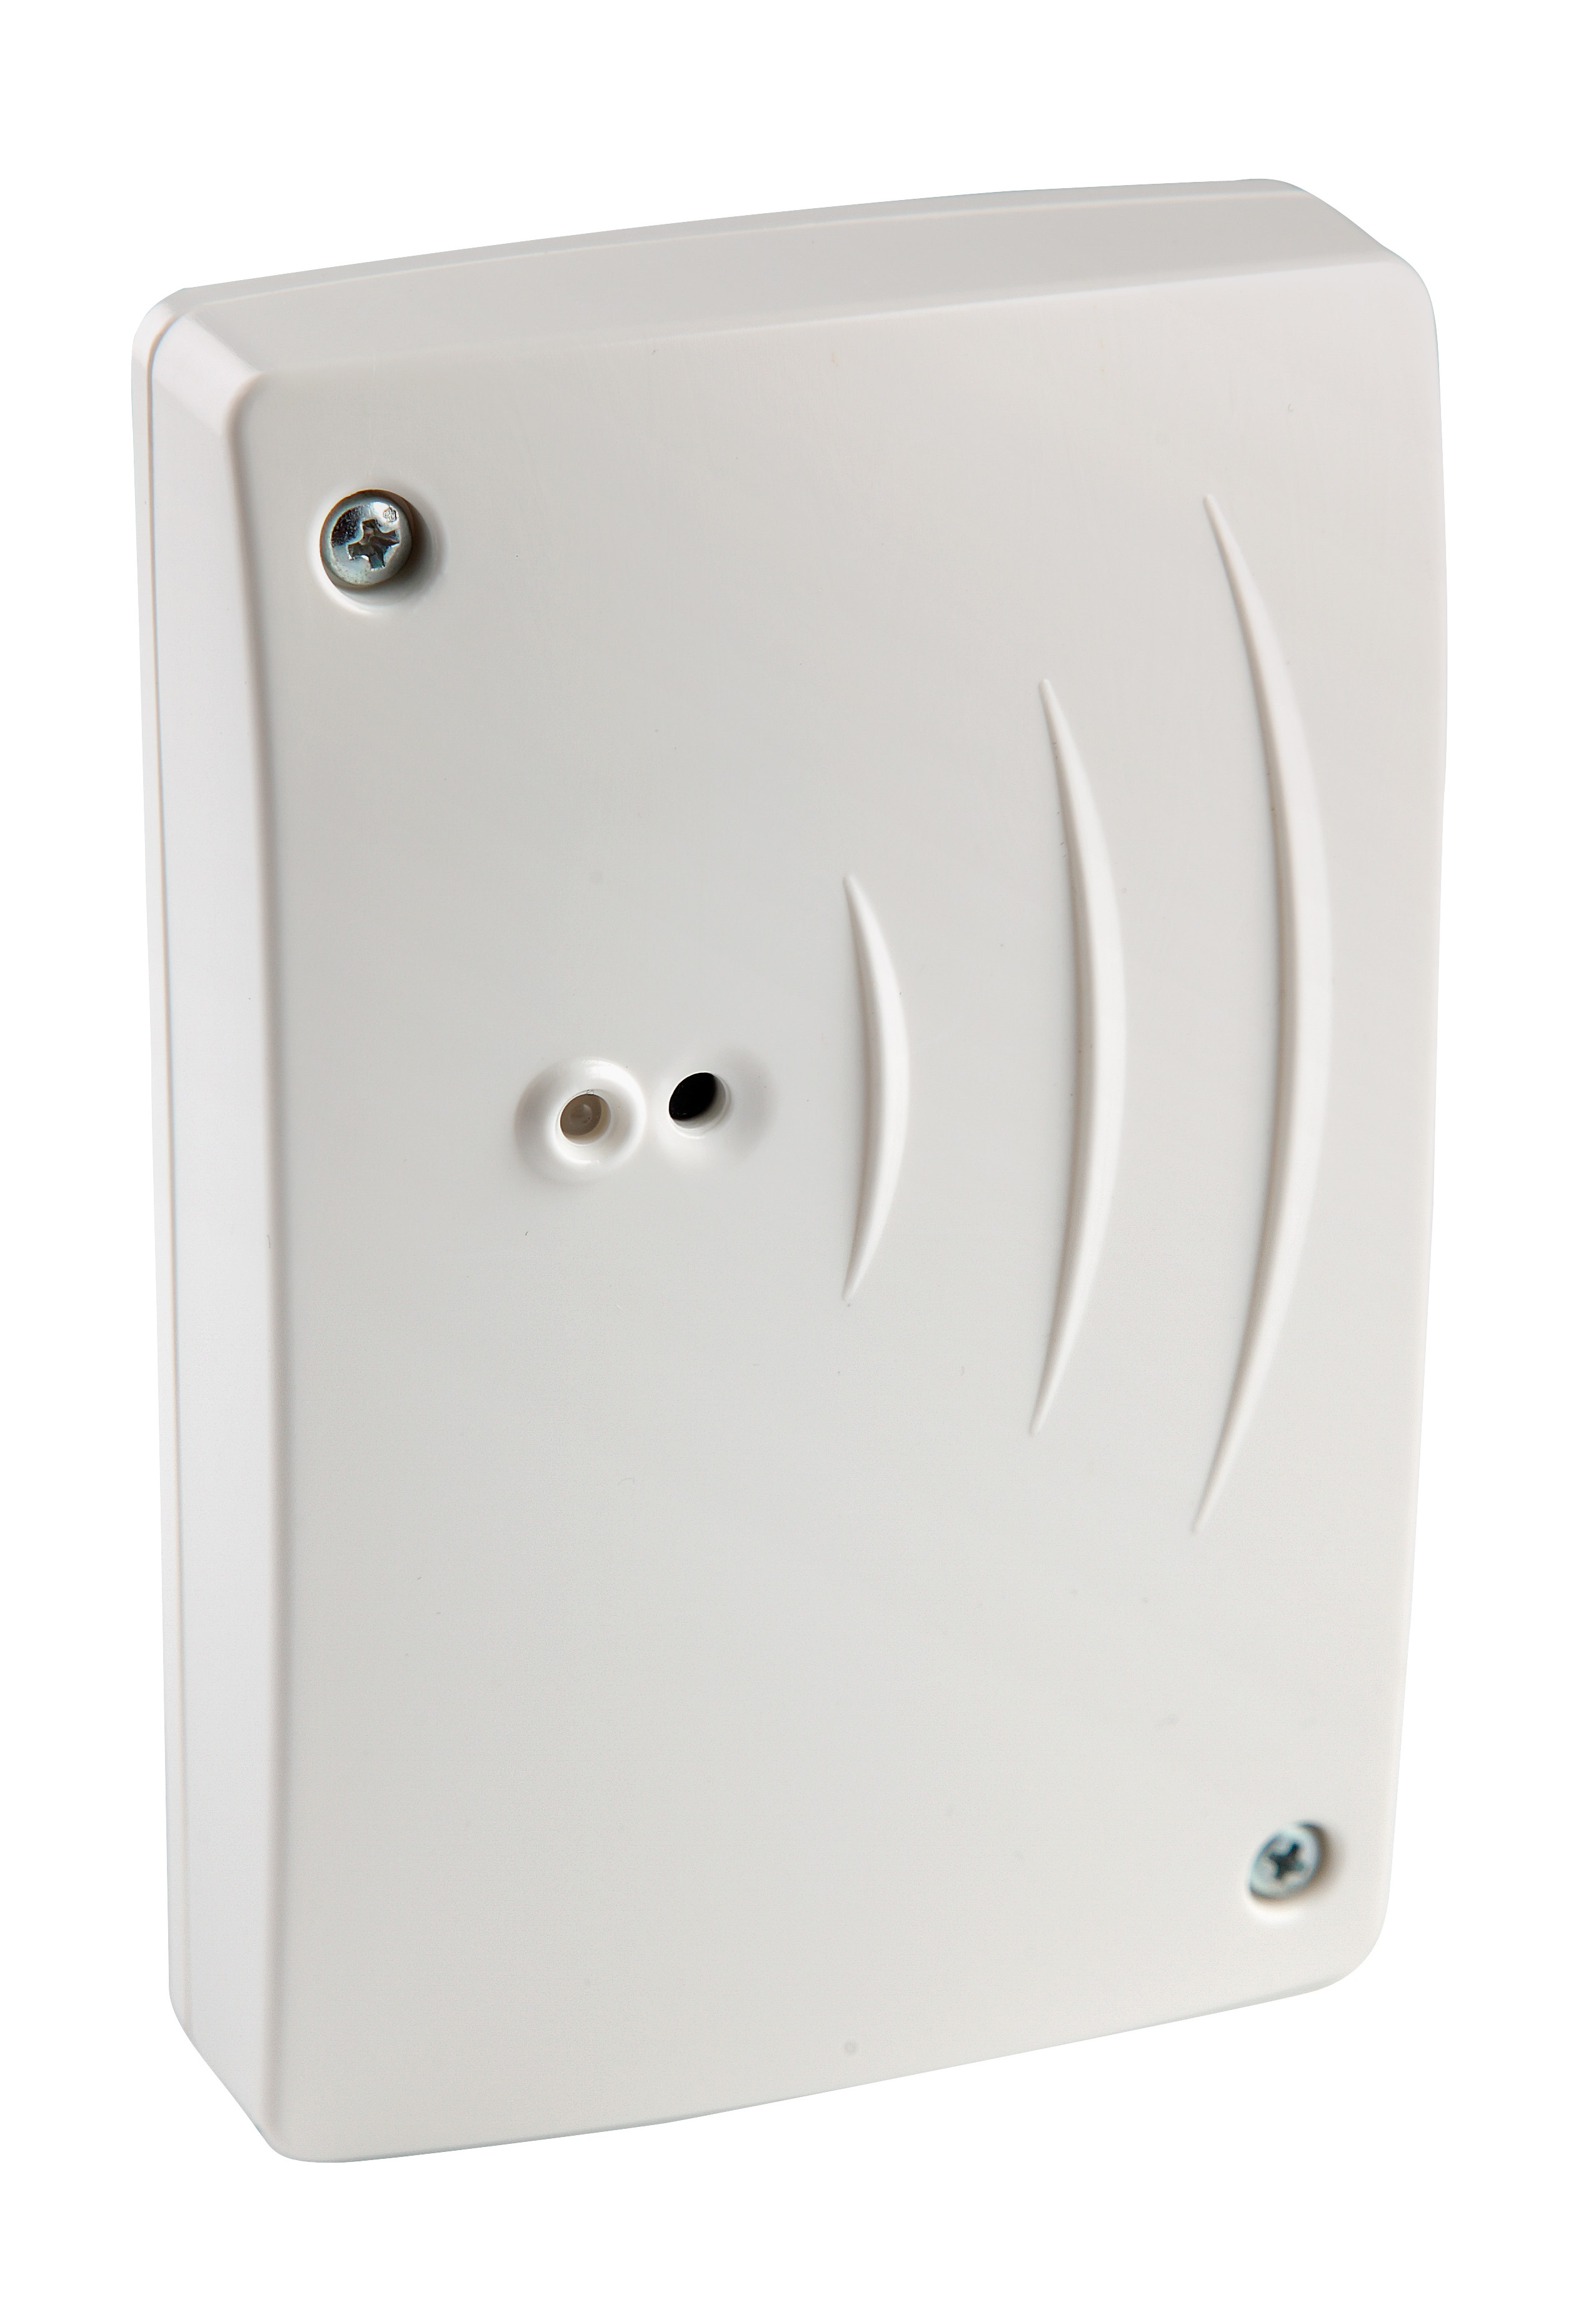 1 Stk Smart Switch PVC00005--